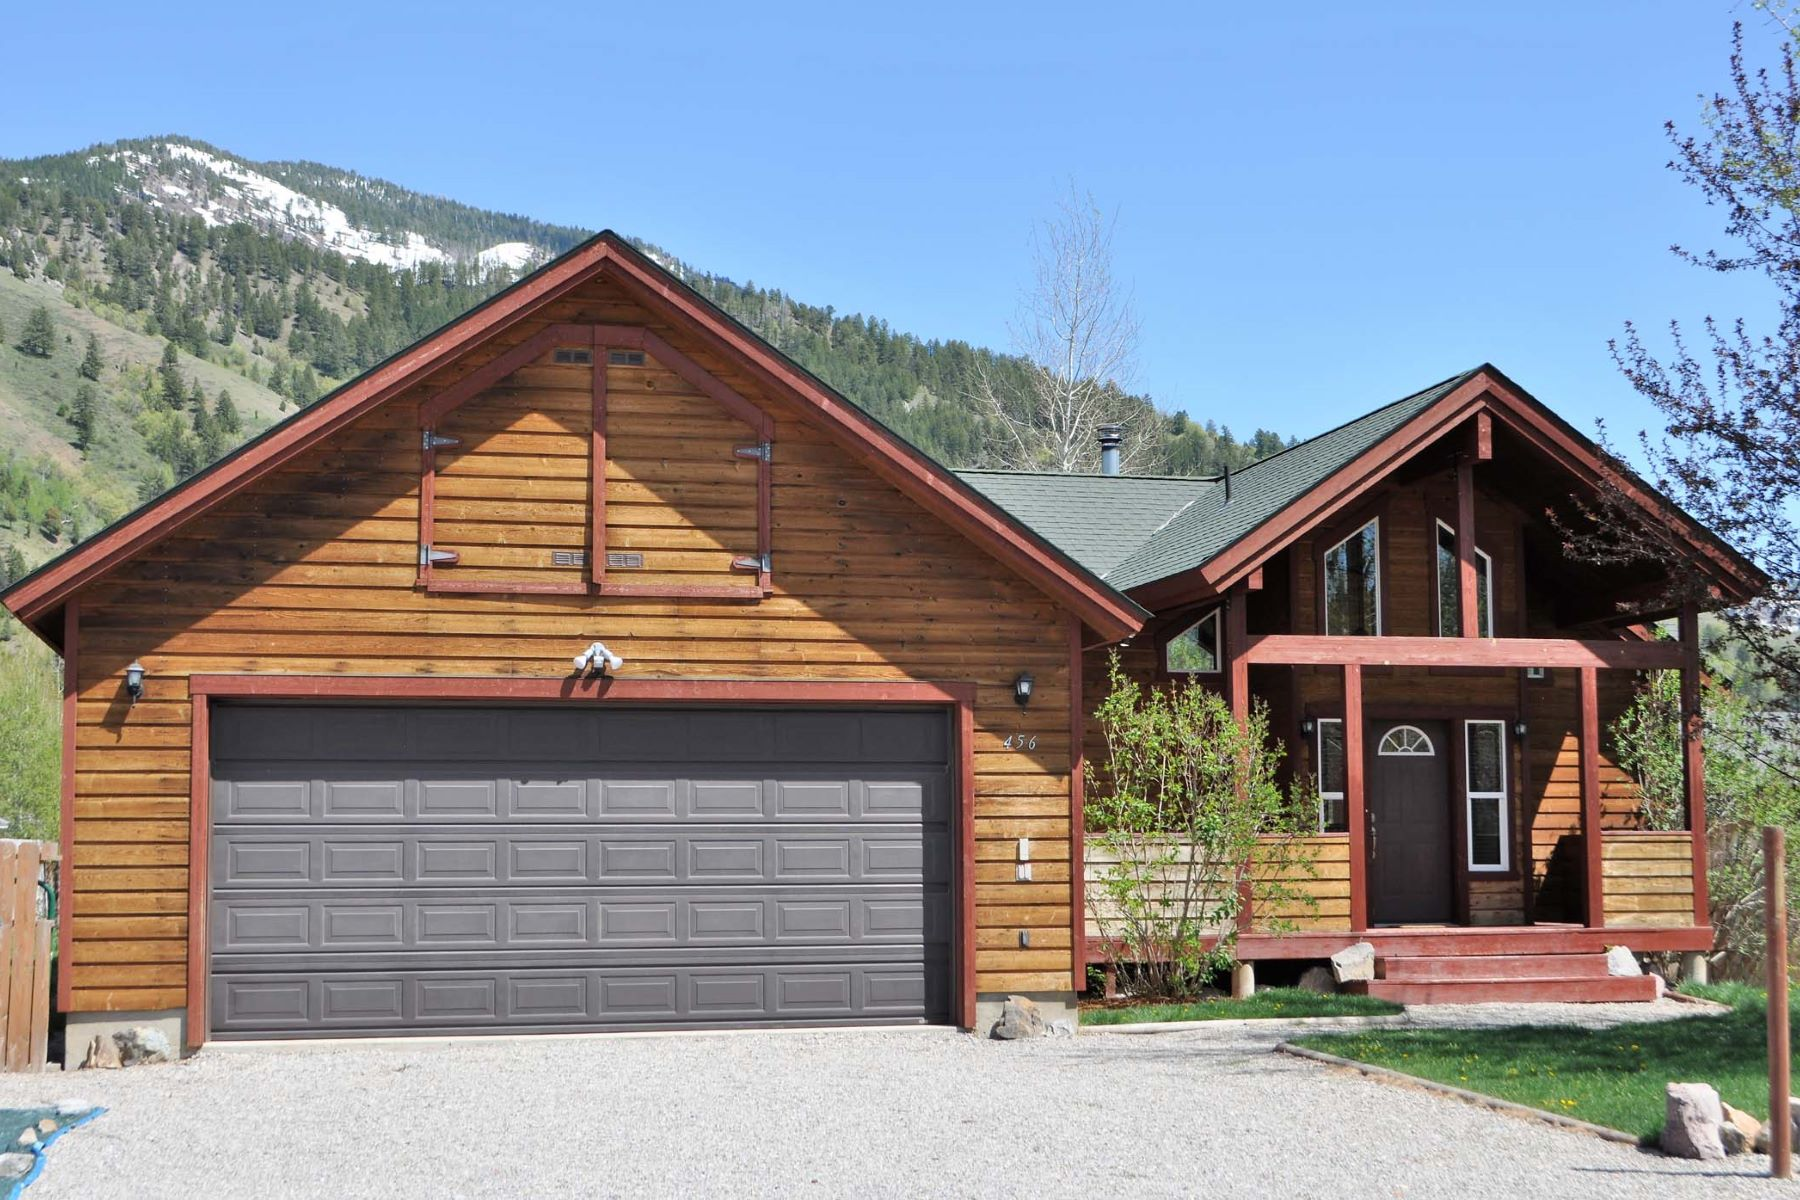 Single Family Home for Sale at Updated Three Bedroom Home in Alpine 456 Greys River Loop Alpine, Wyoming 83128 United States